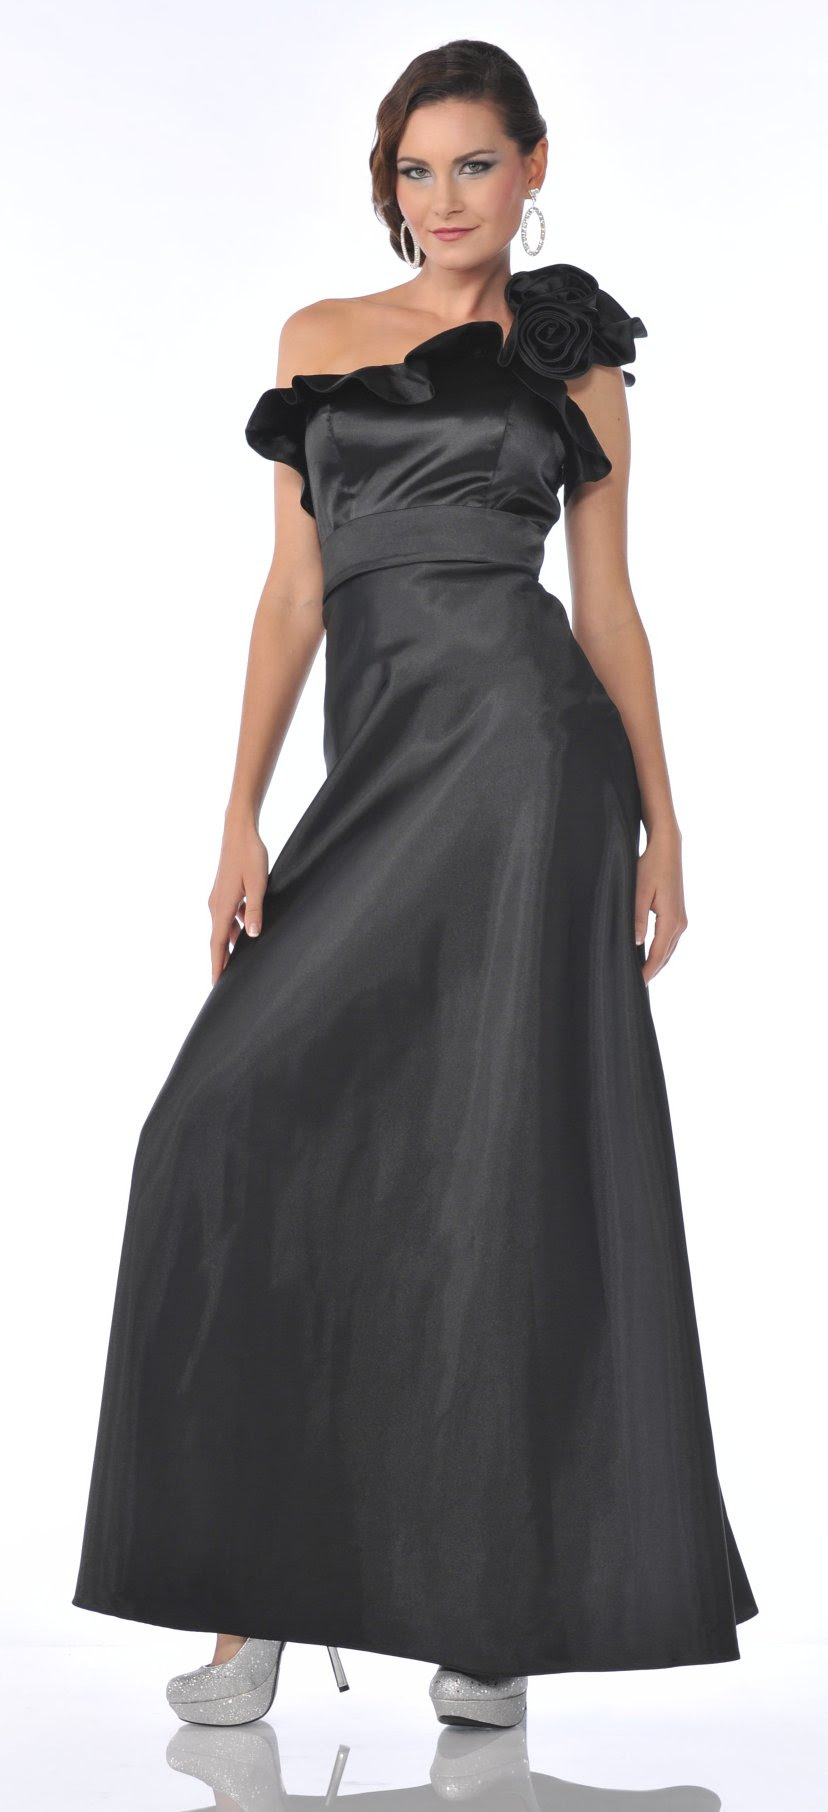 black one strap rosette satin long formal gown dress 3